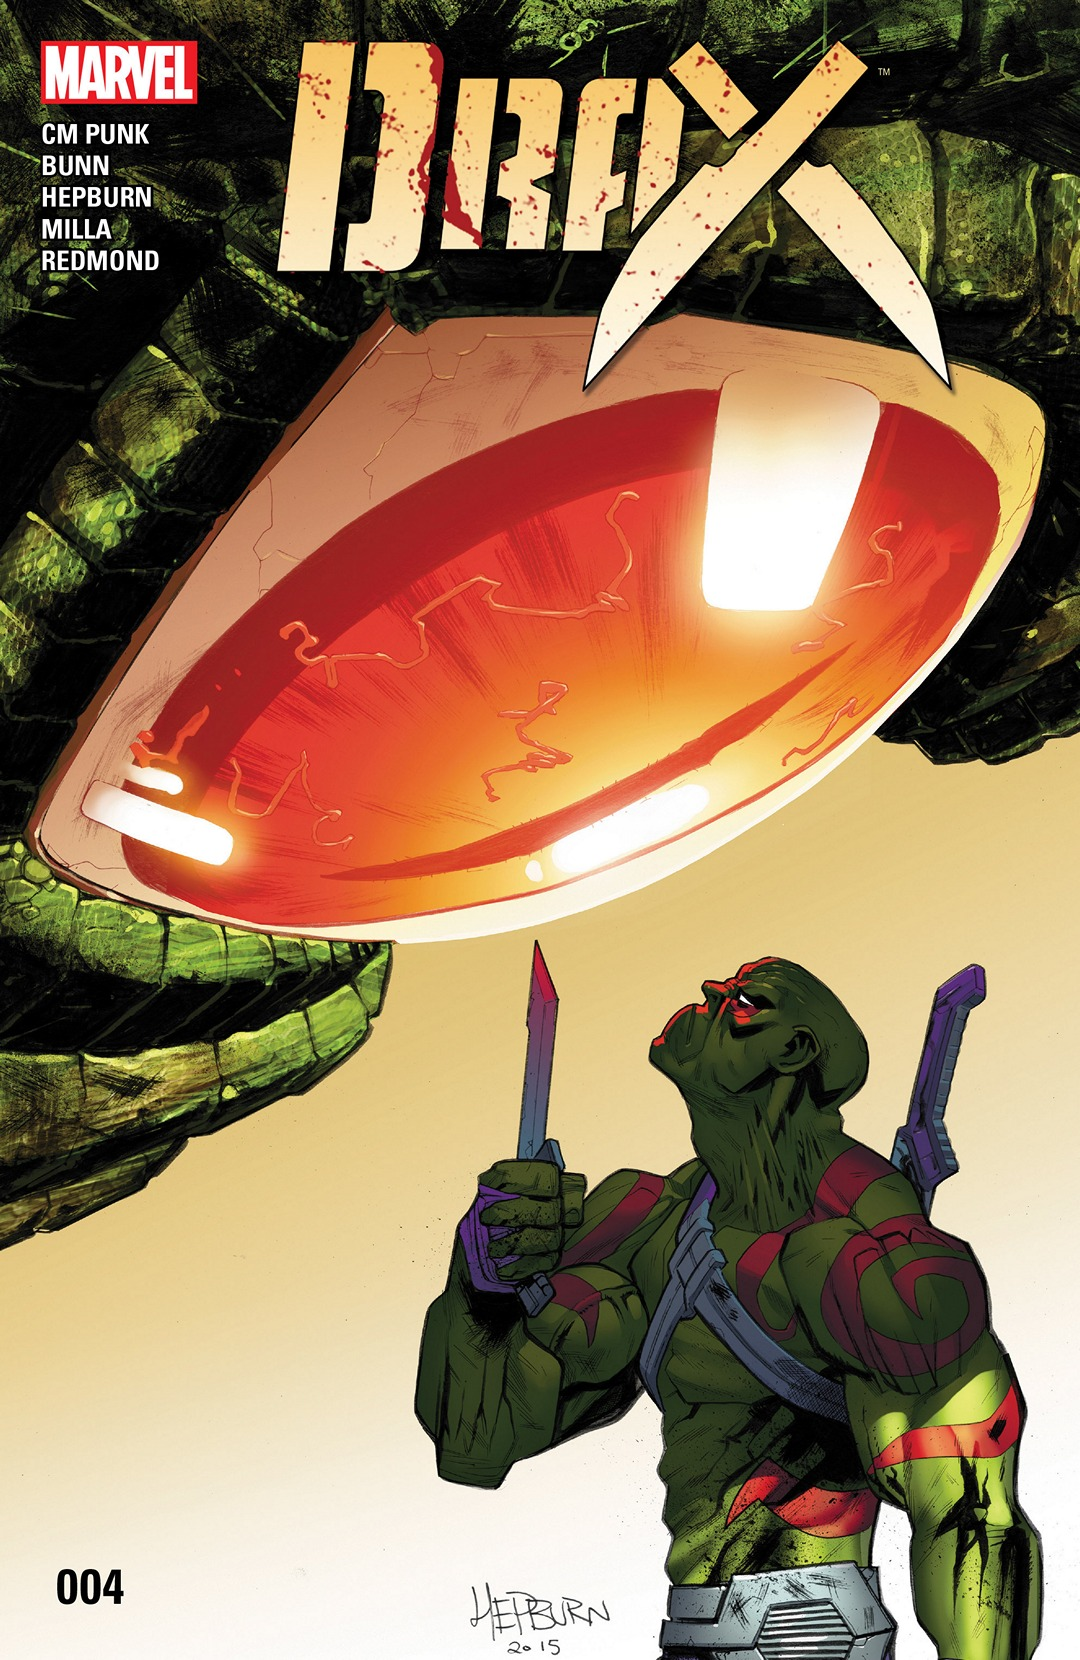 COMIC REVIEW: Drax #4 - The Dragon's Breath